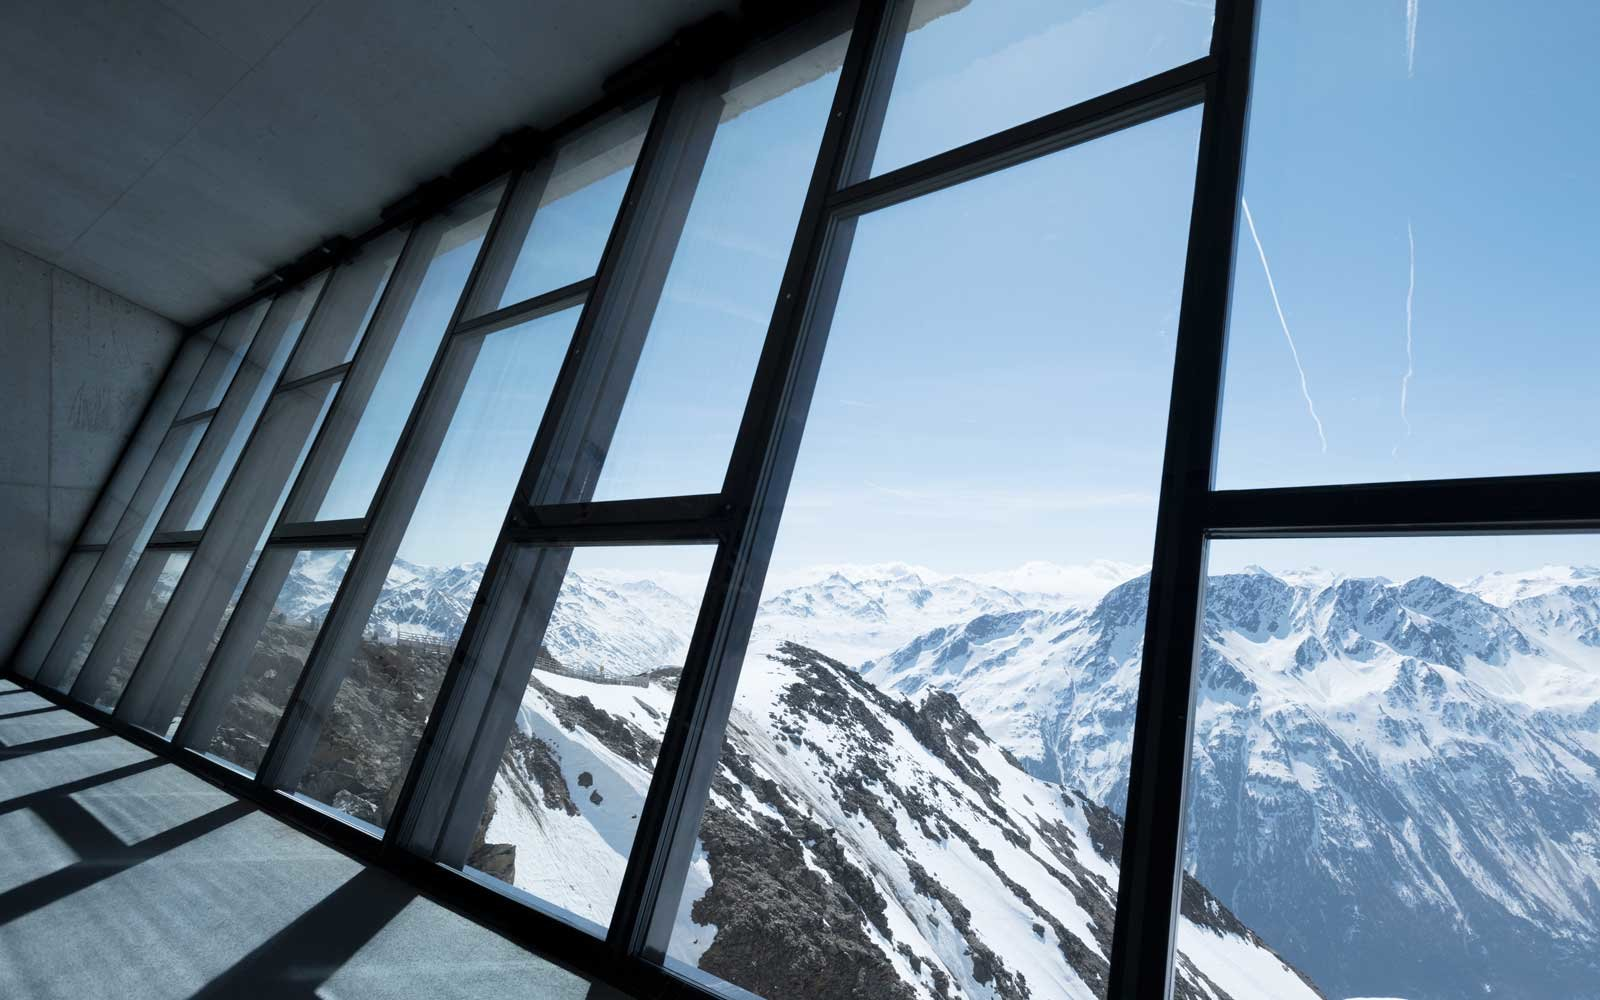 View from the Action Hall at the 007 Elements James Bond experience in Austria